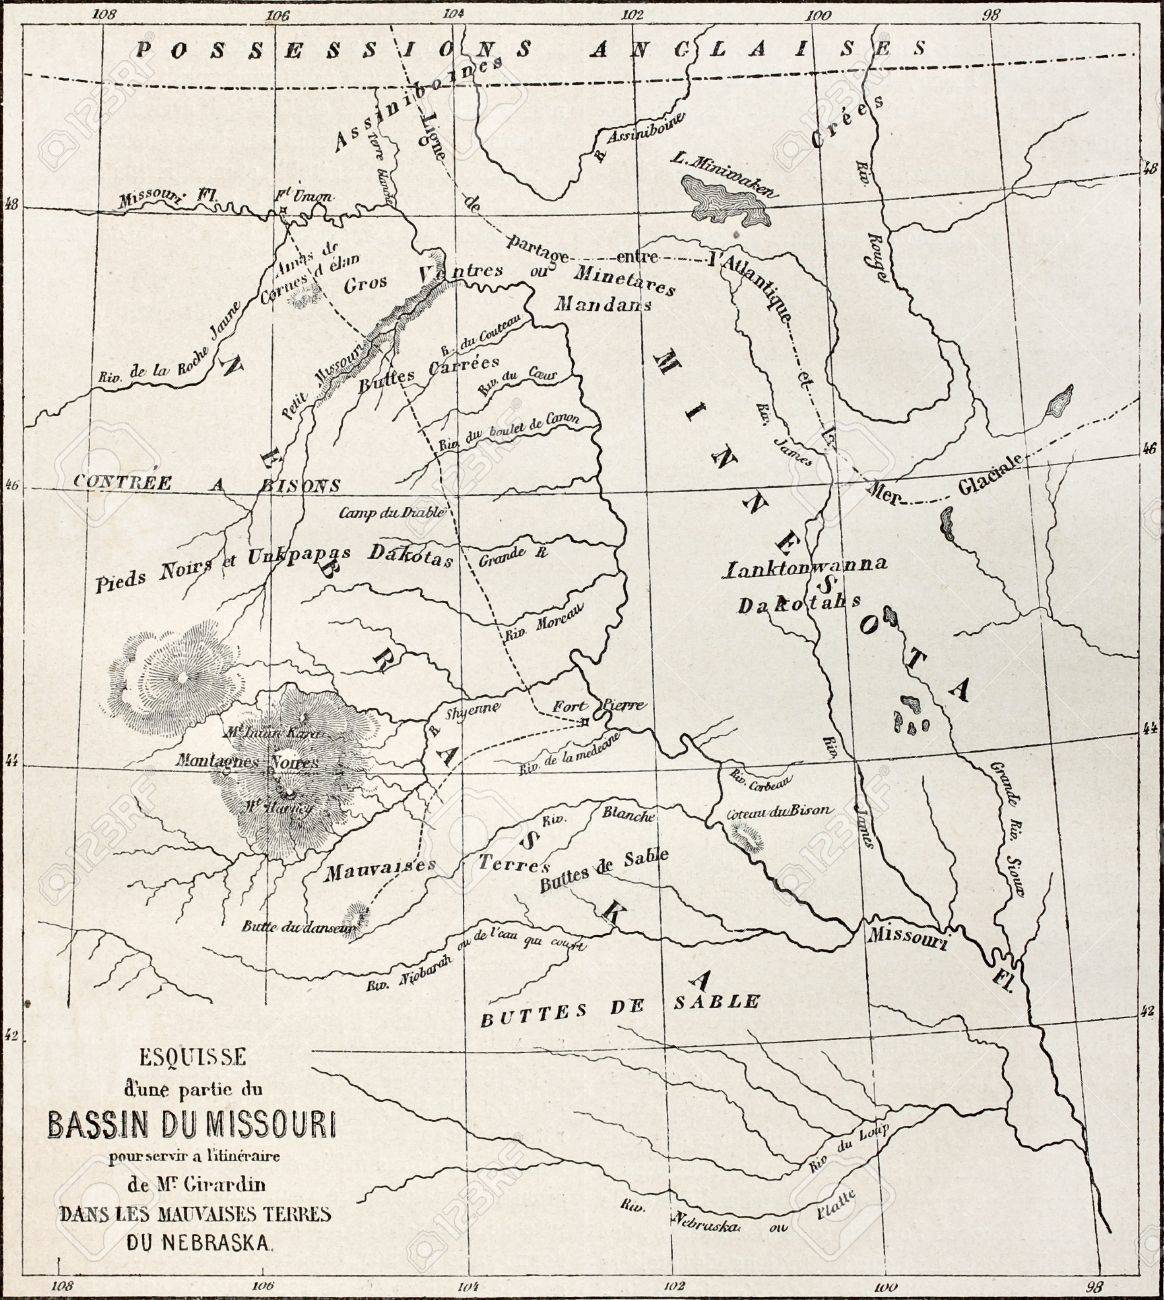 Old Map Of Part Of Missouri Basin In Nebraska USA Created By - Nebraska us map